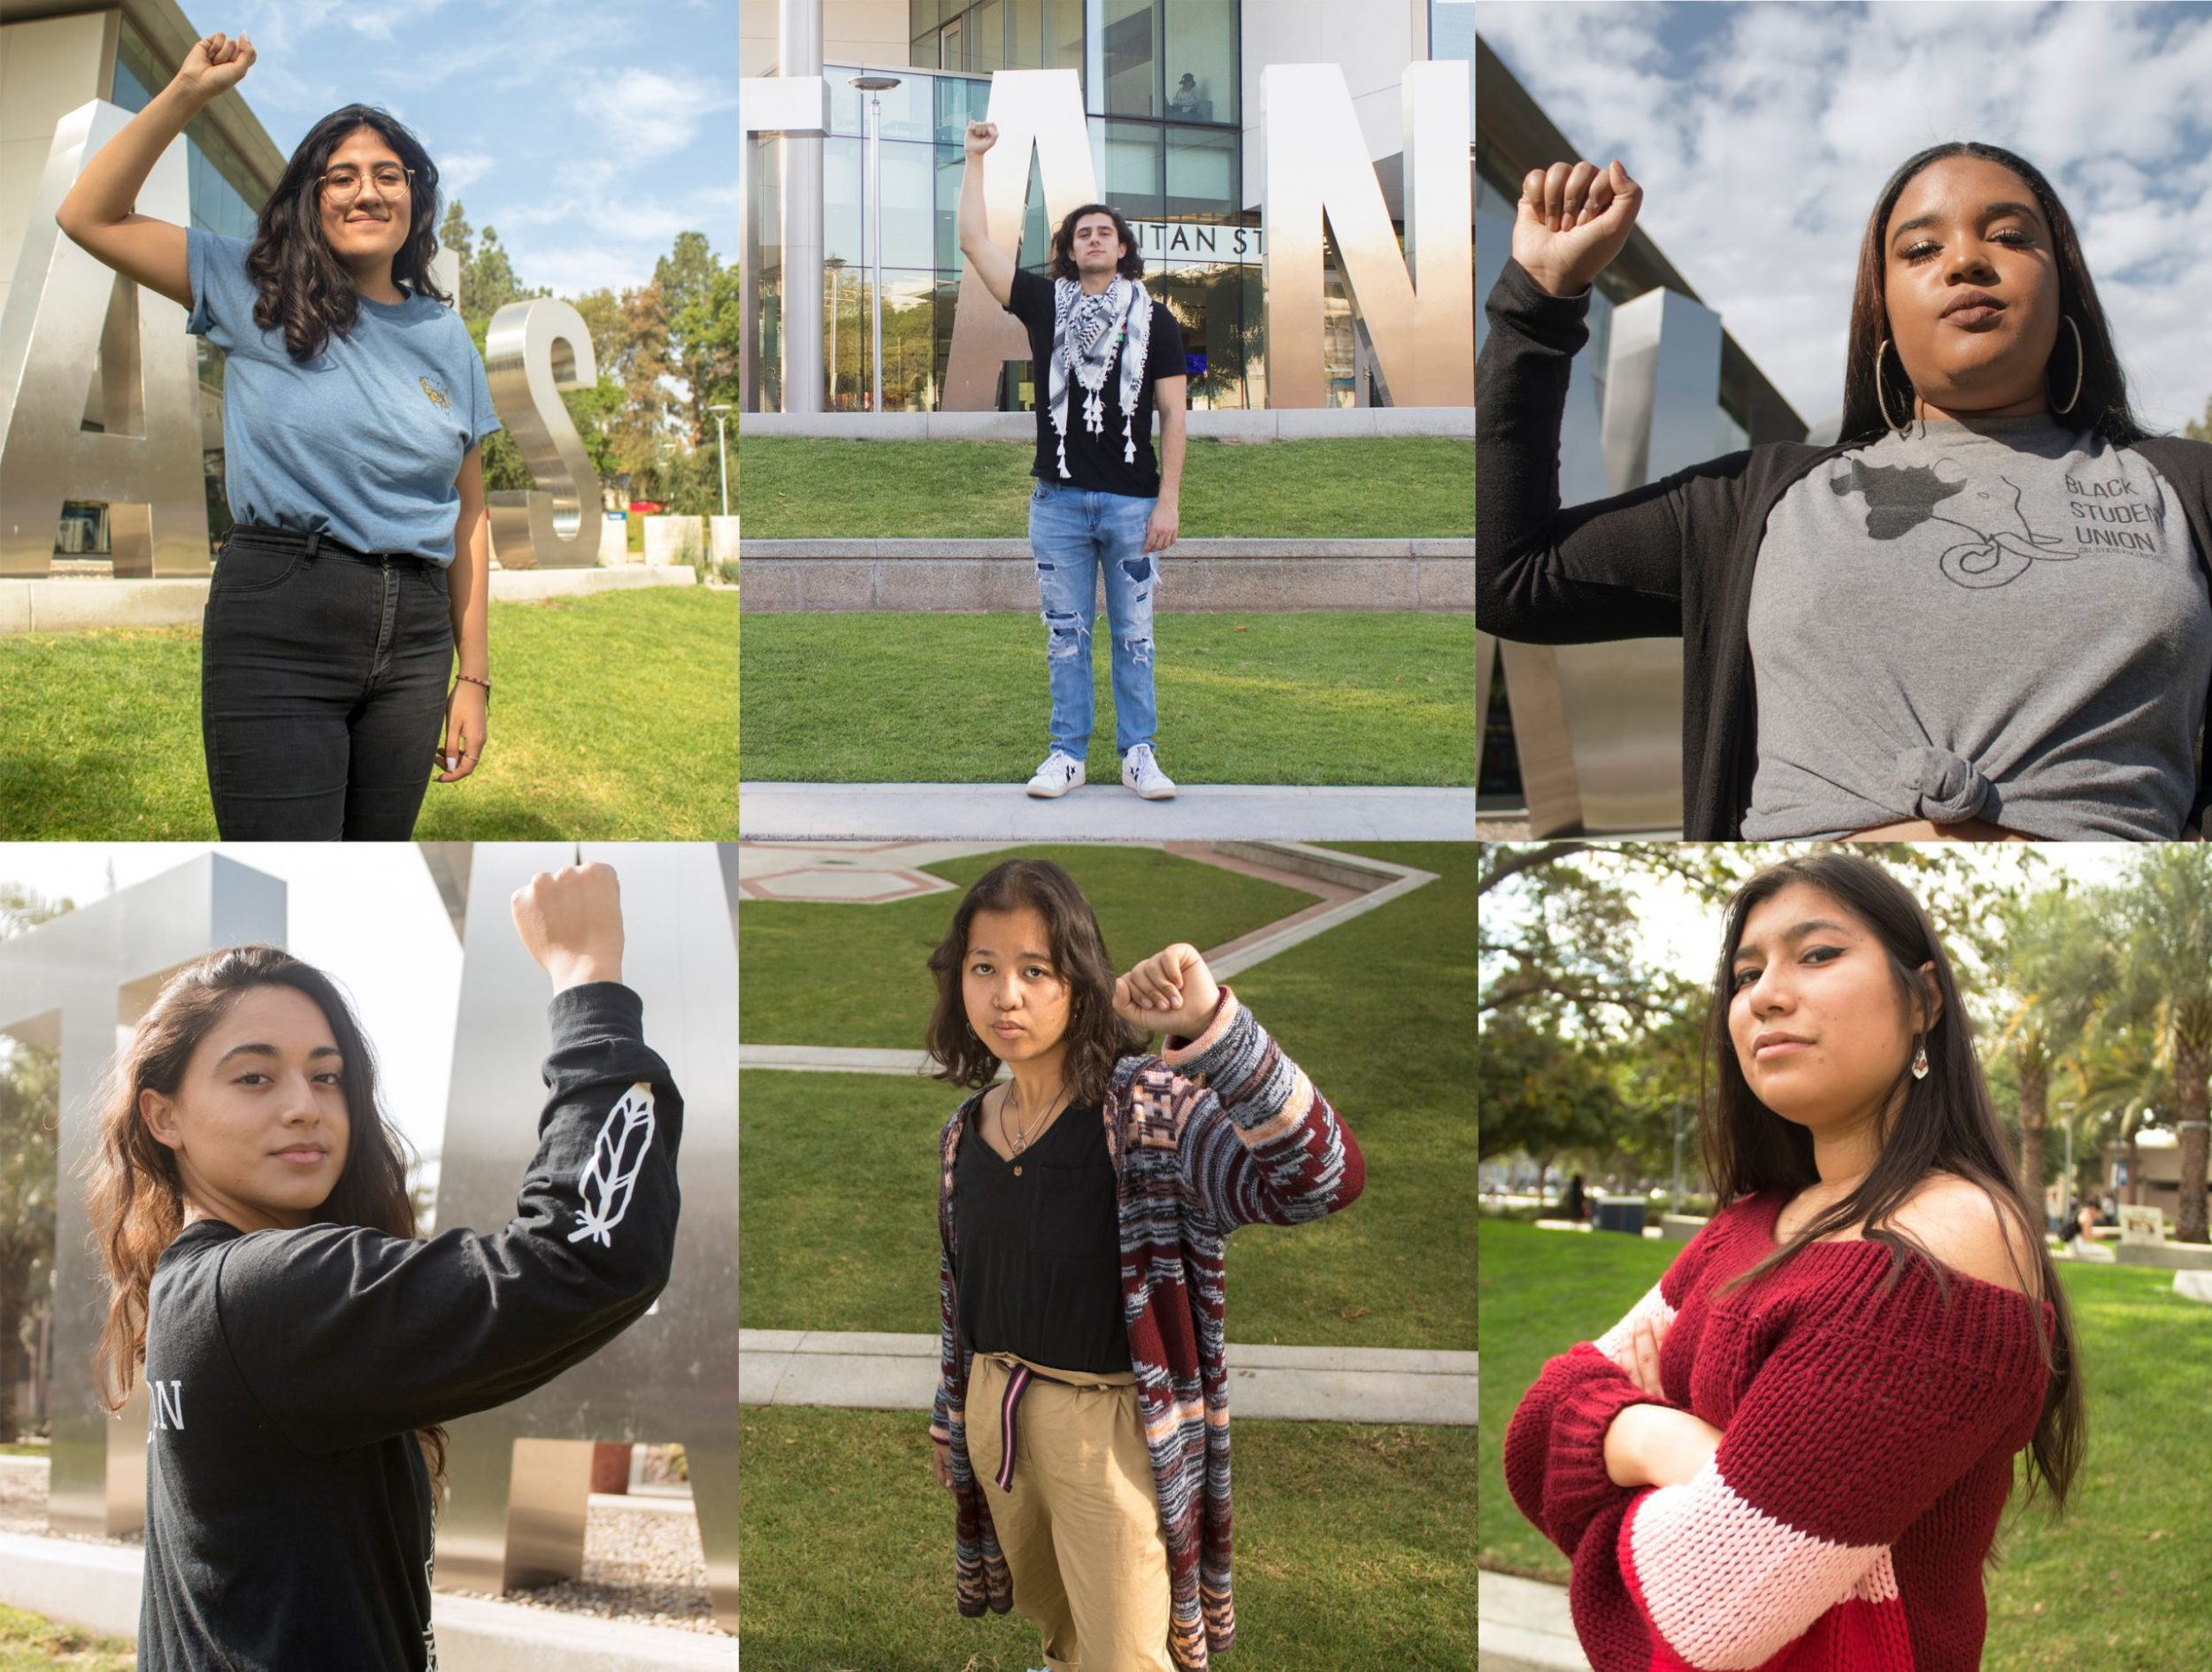 Freedom Fighters lead the charge for change at CSUF